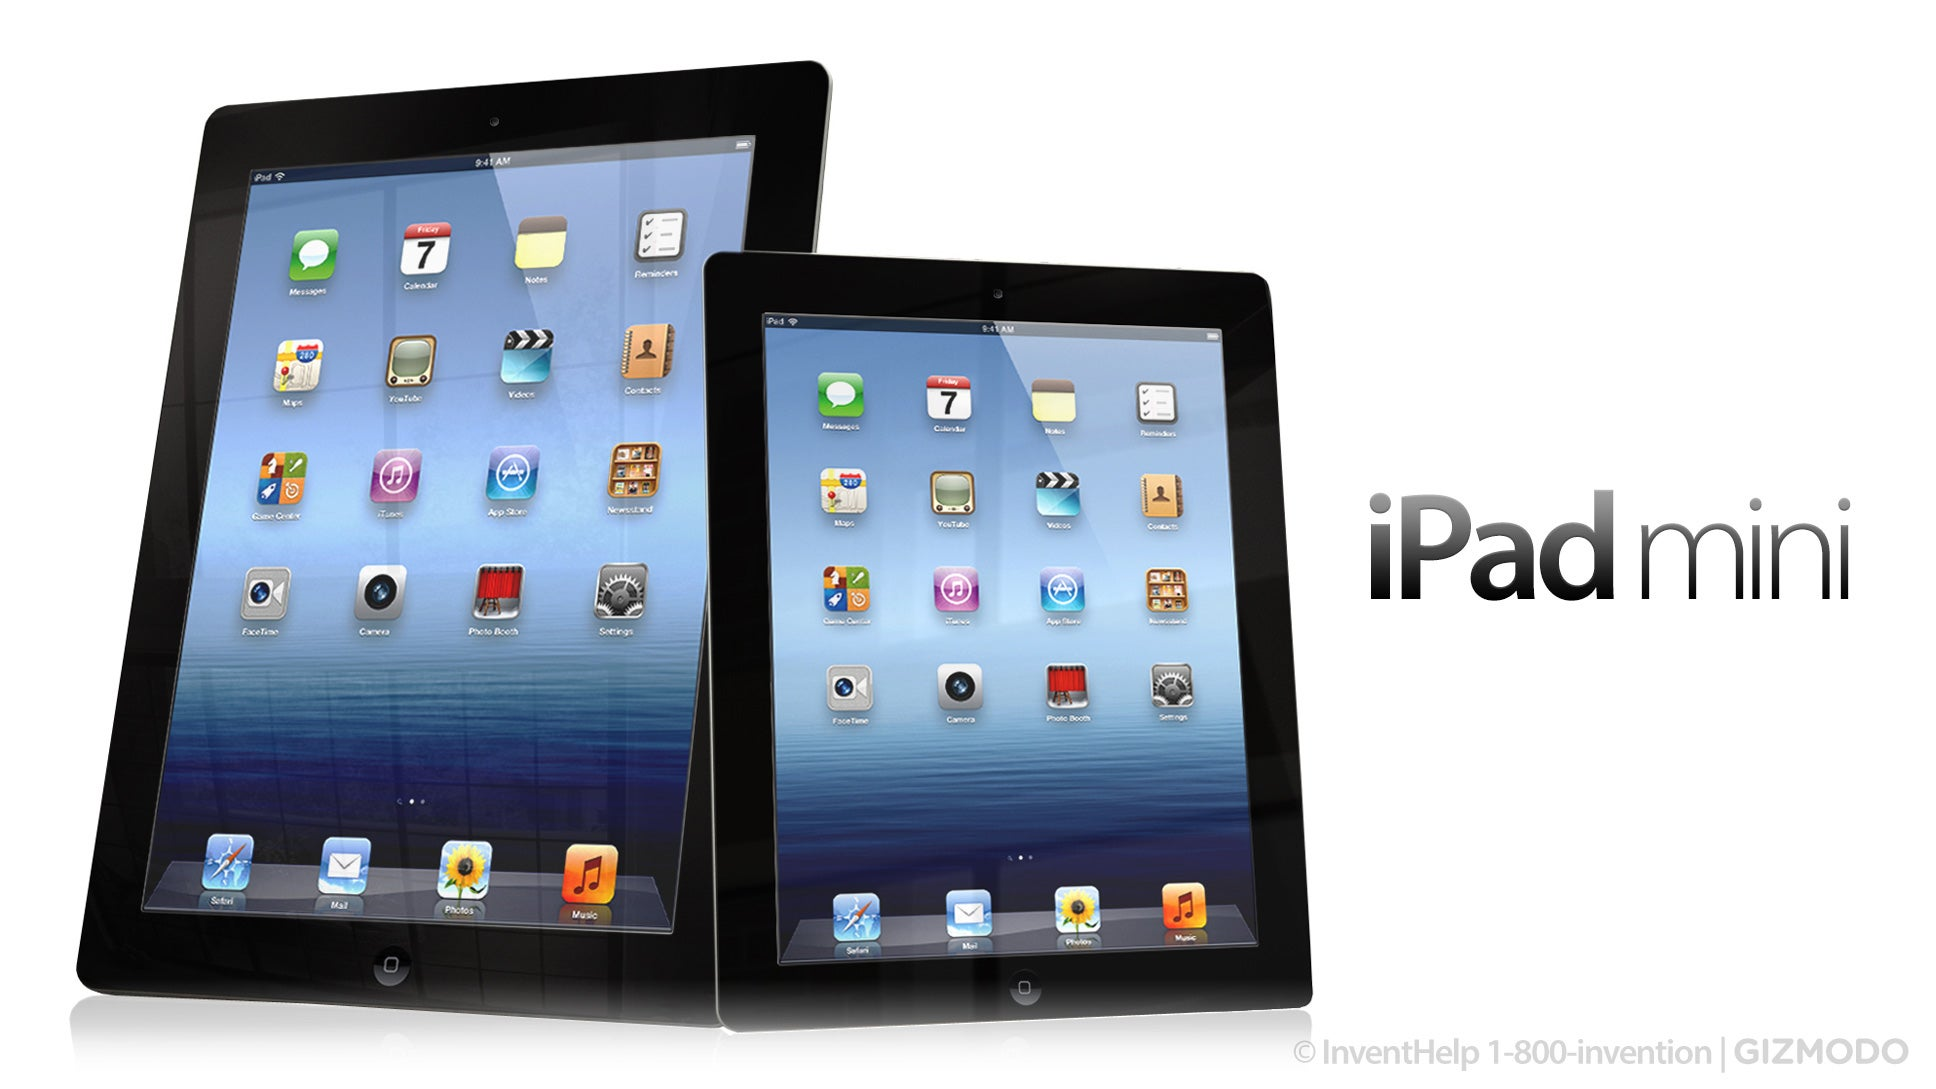 Ipad mini rumor roundup everything we think we know updated for Ipad 4 release date rumor roundup